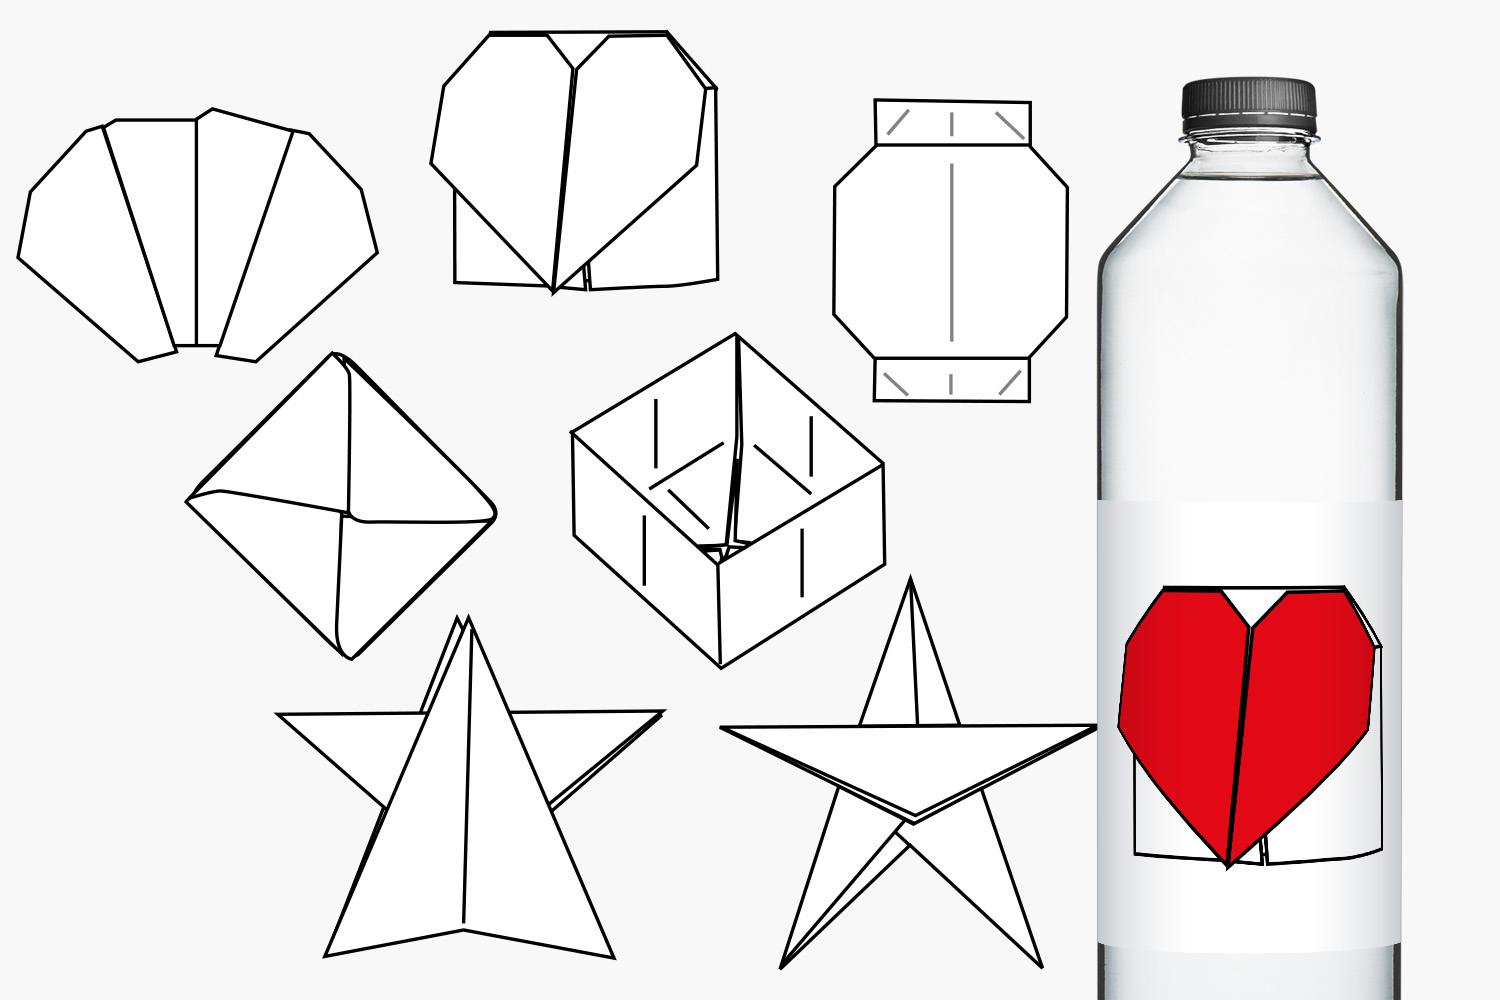 Simple origami clip art illustrations example image 2